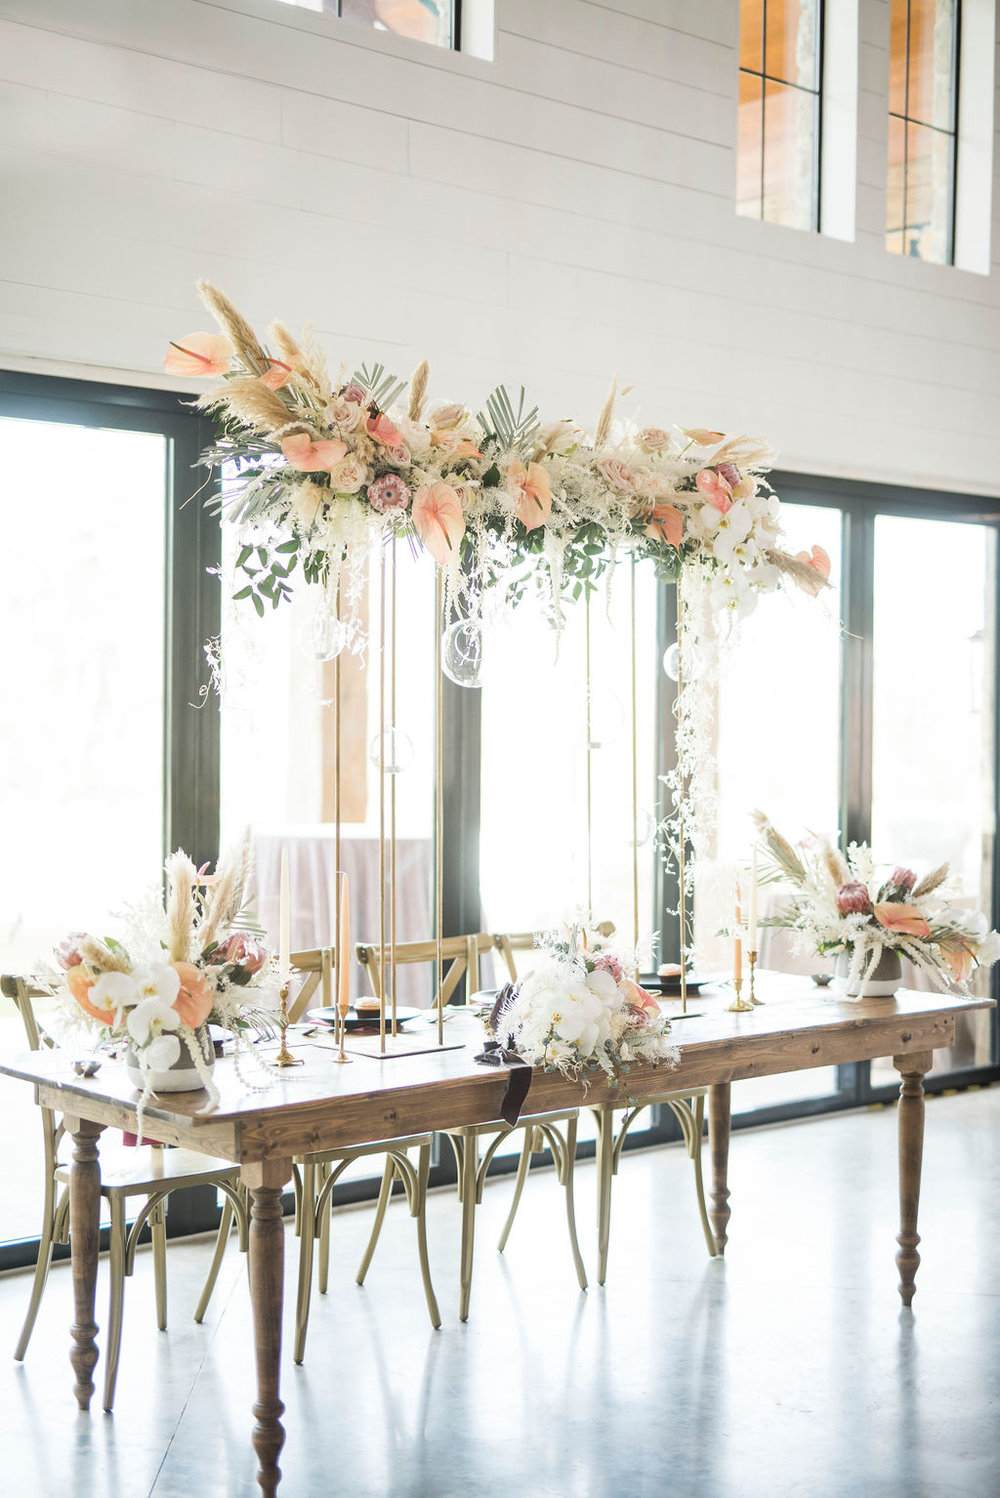 boho modern palm springs white pink peach pampas floral wedding inspiration designers epoch co floral by urban rubbish